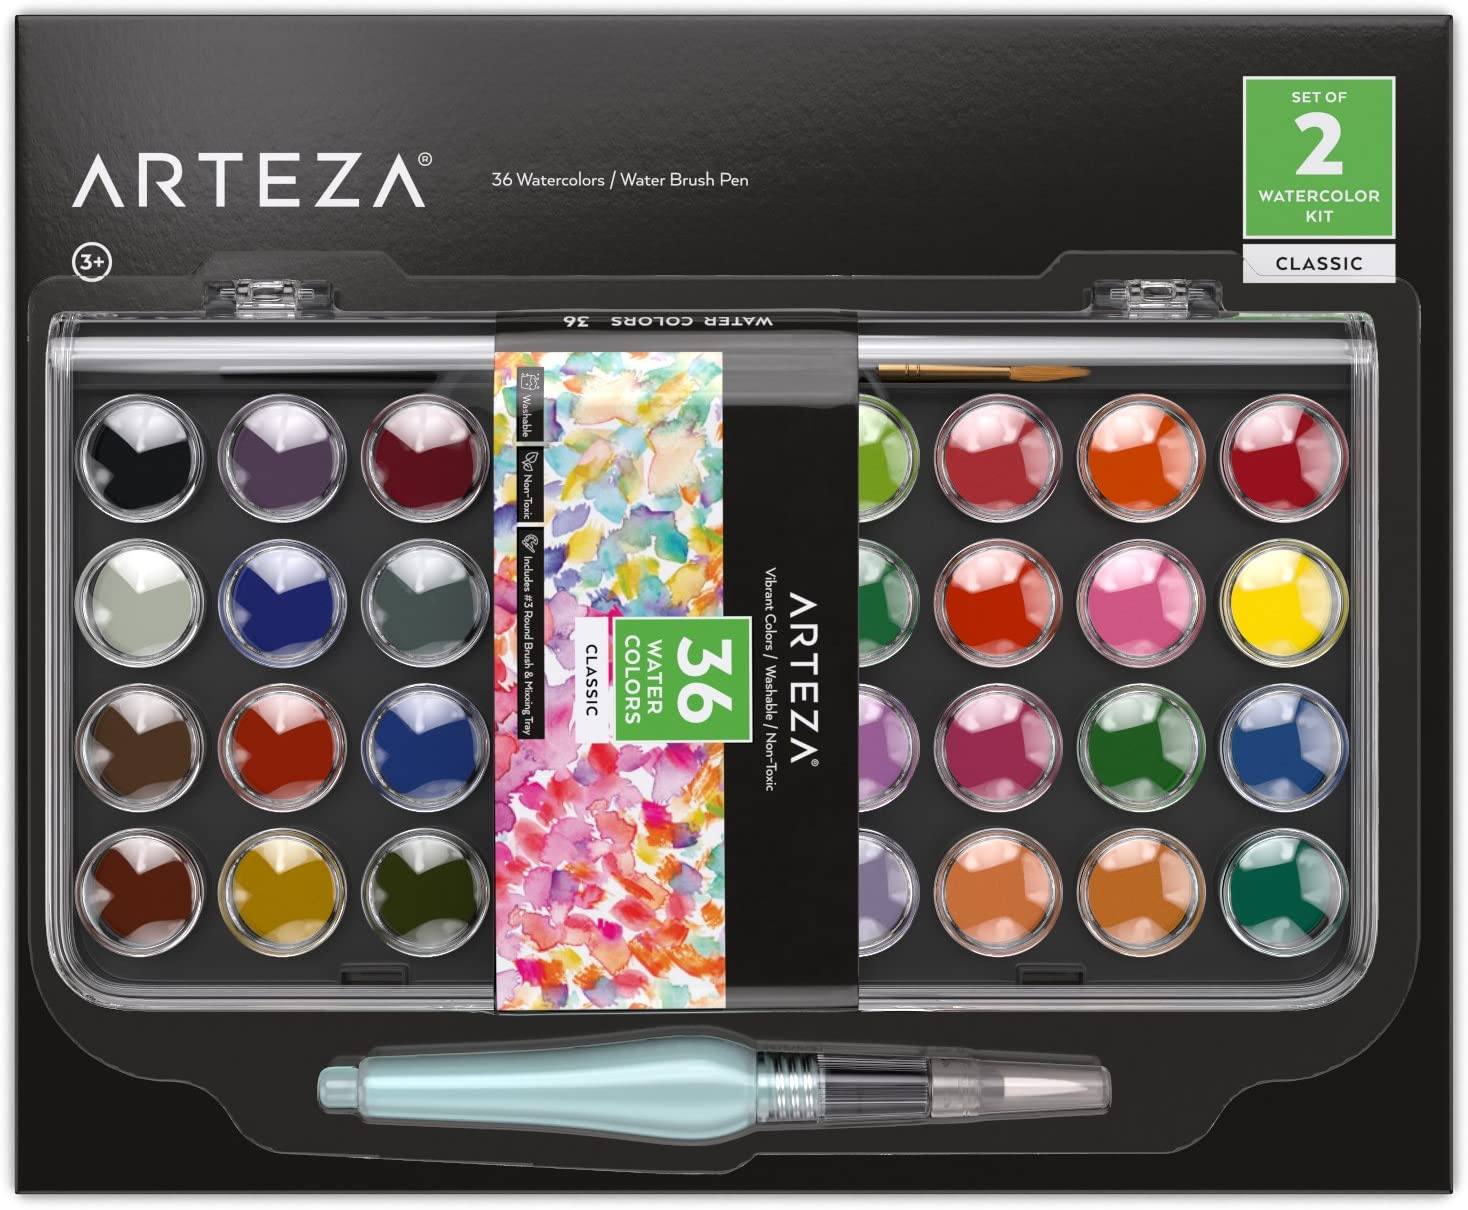 ARTEZA Classic Watercolor Paint, Set of 36 Vibrant Color Cakes, Includes 1 Water Brush Pen, Travel Watercolor Kit for Adults, Artists, and Students